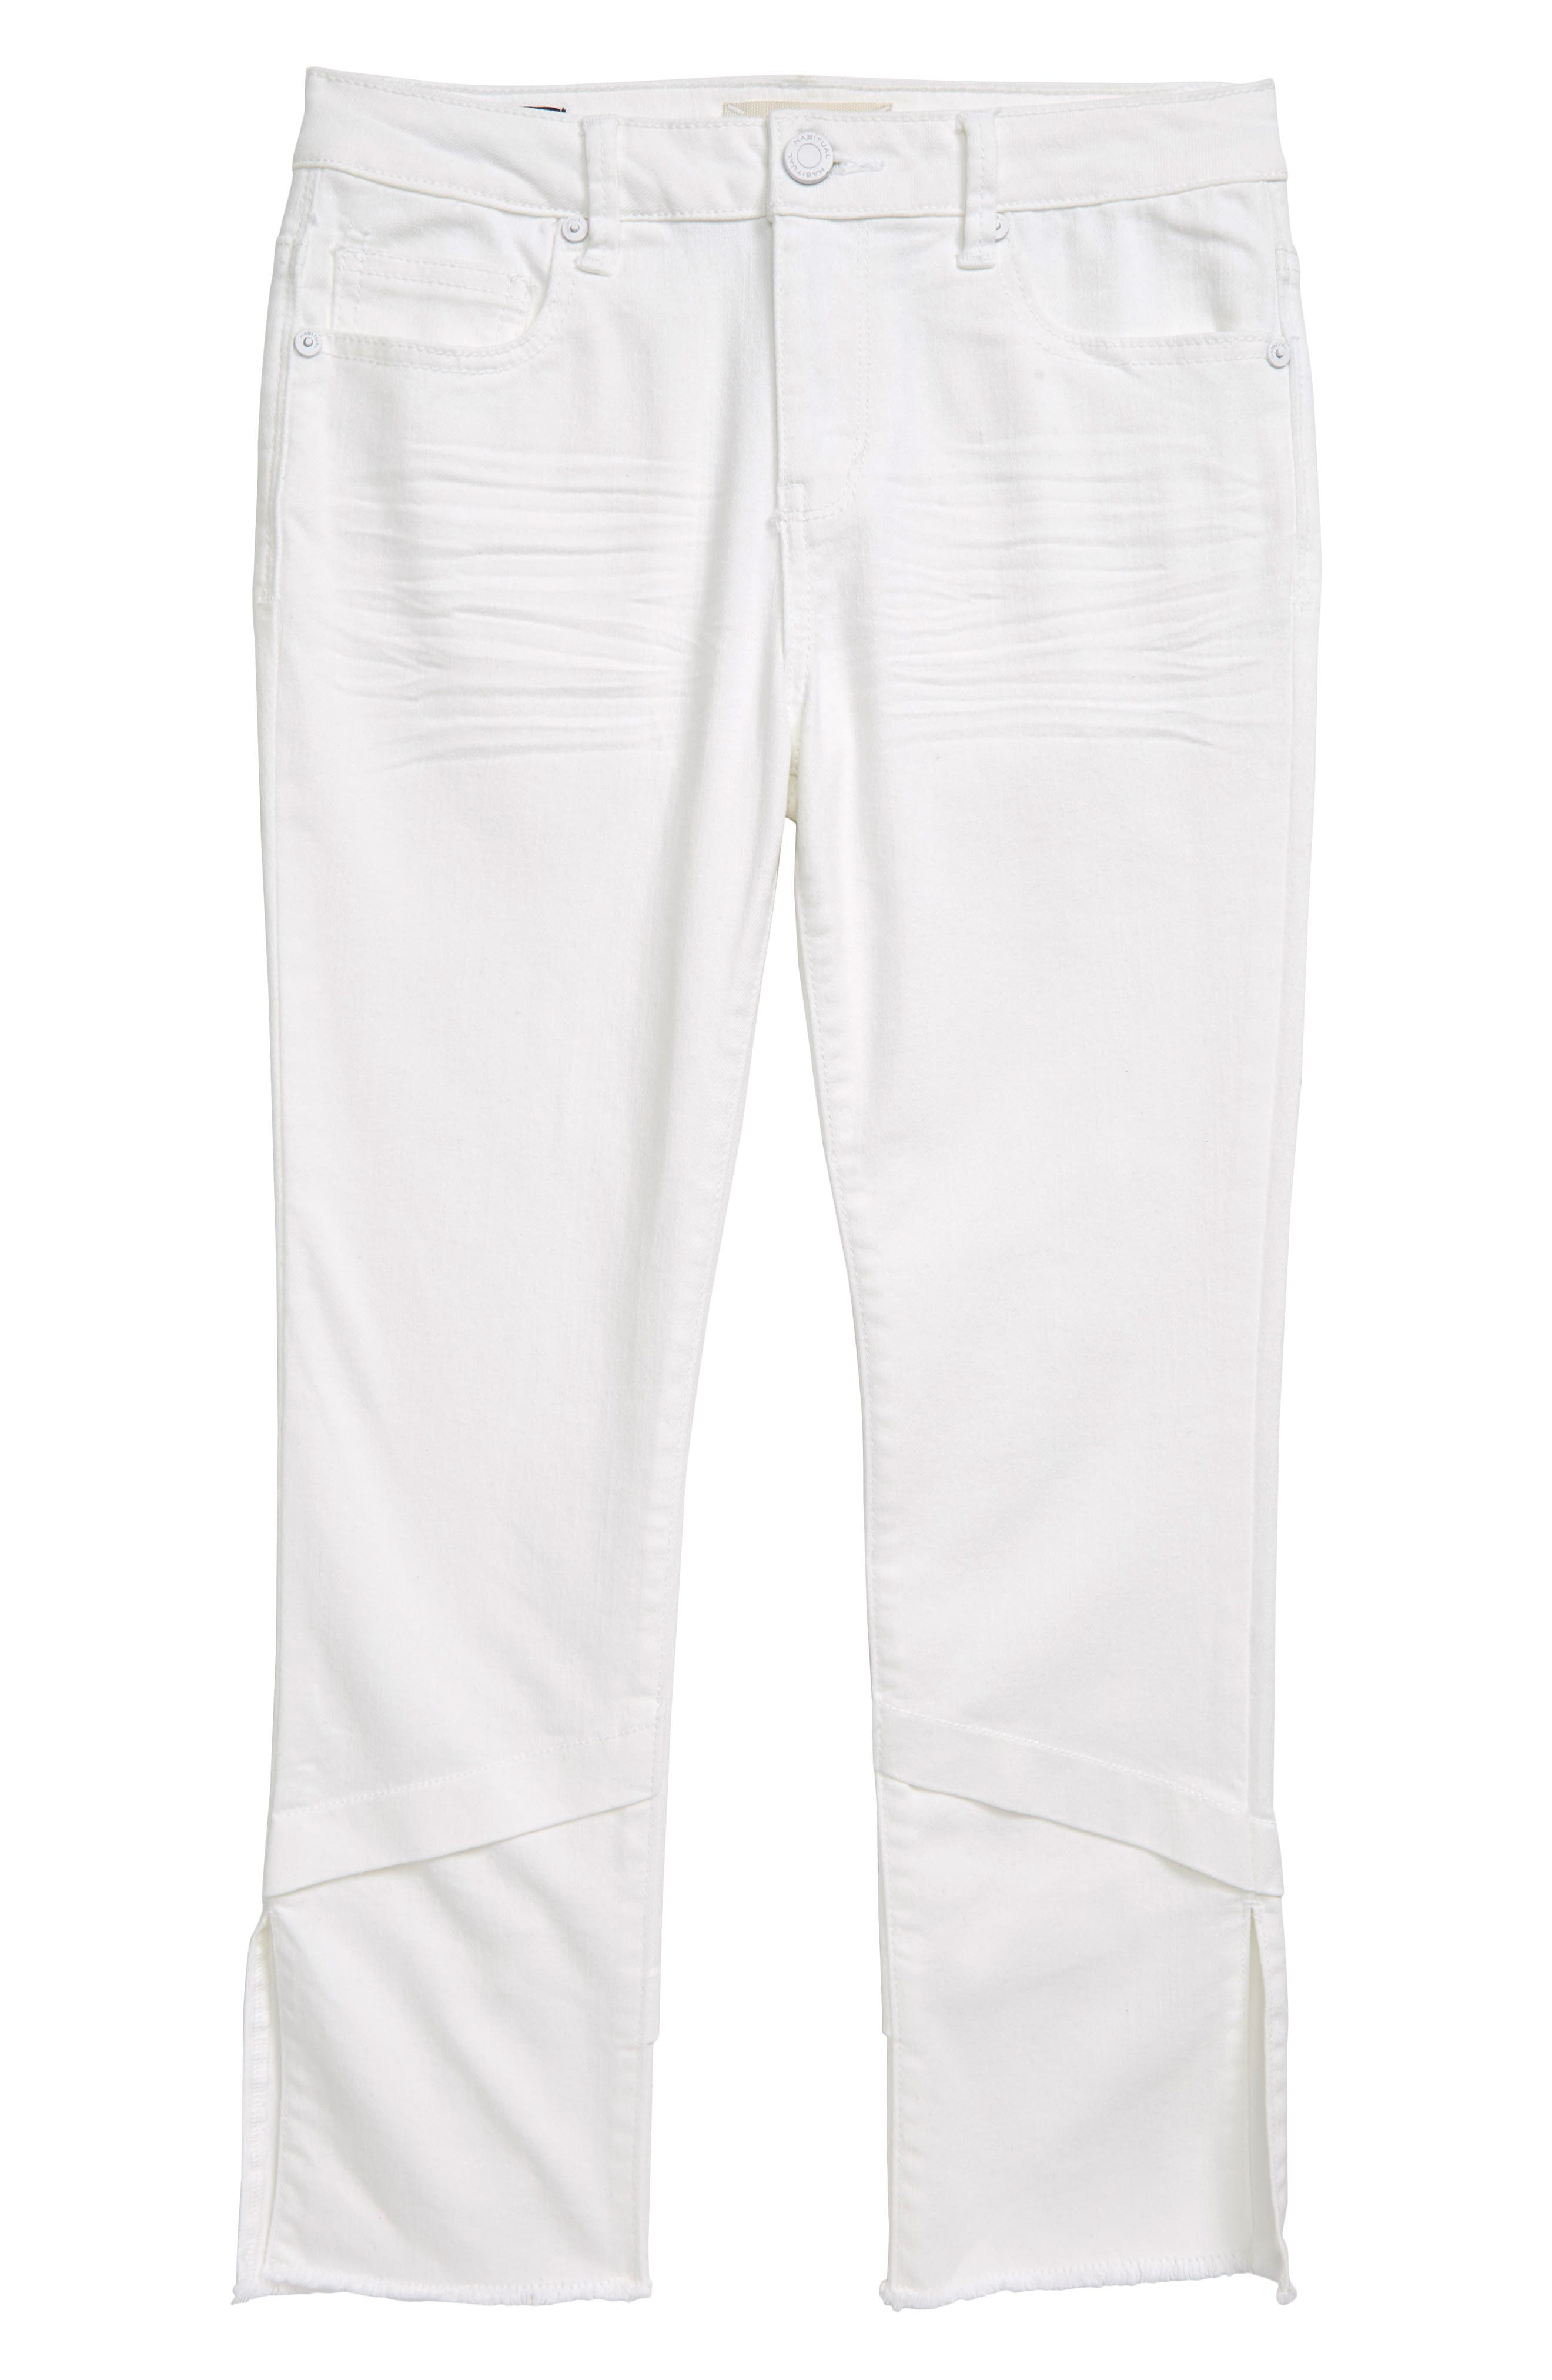 Girls Habitual Girl June Twill Ankle Pants